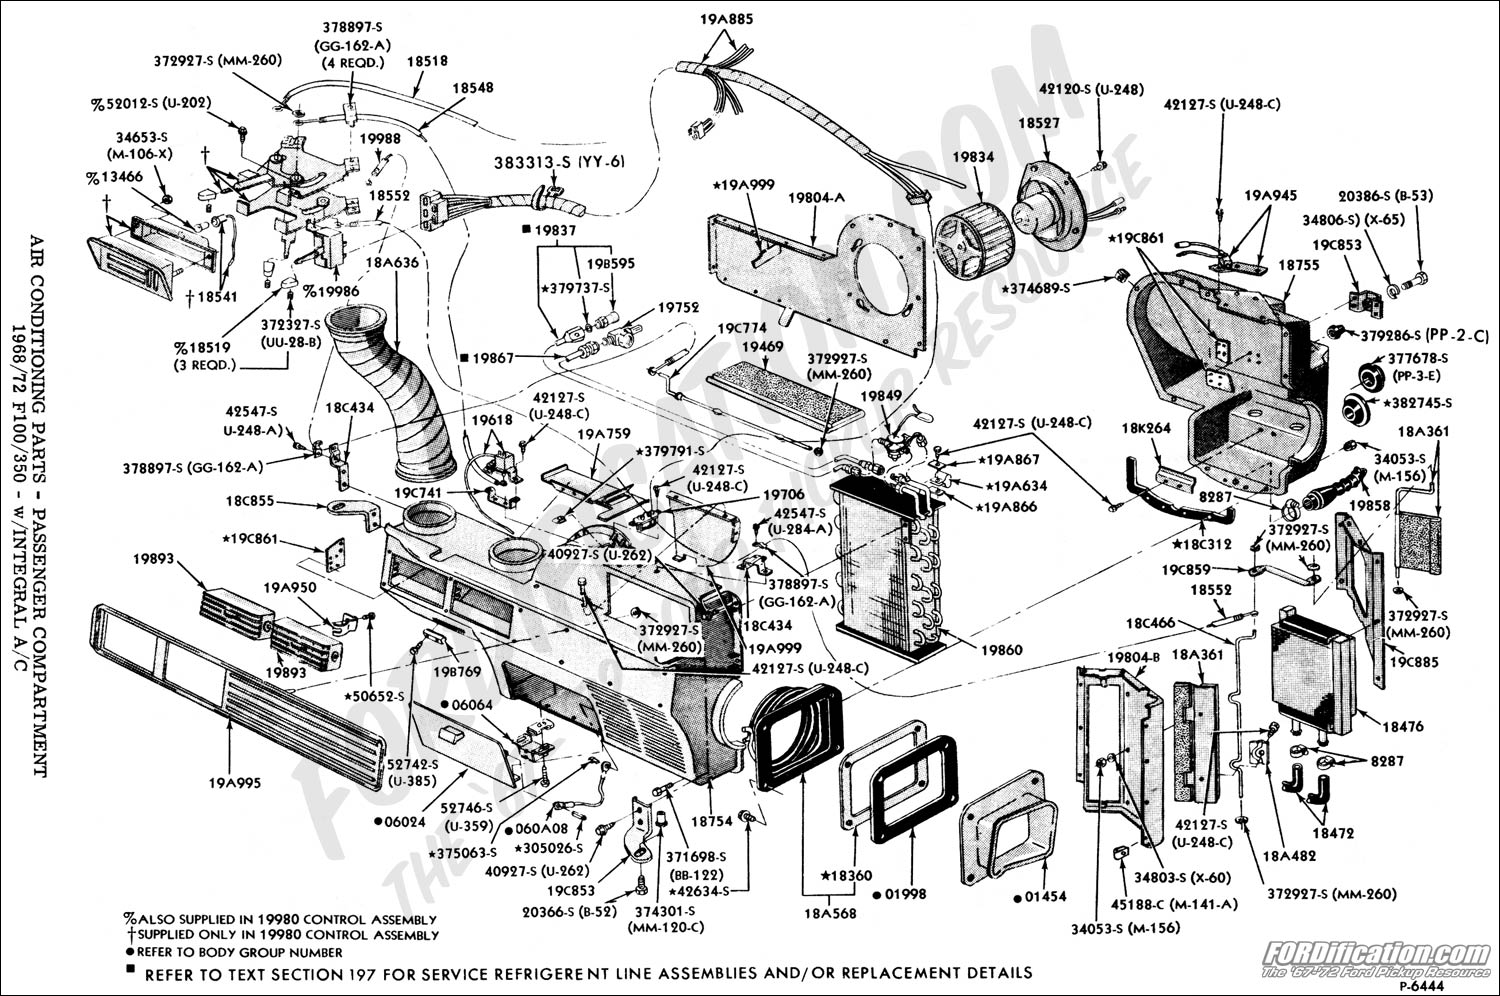 Schematics_f on 1970 Ford Maverick Wiring Diagram